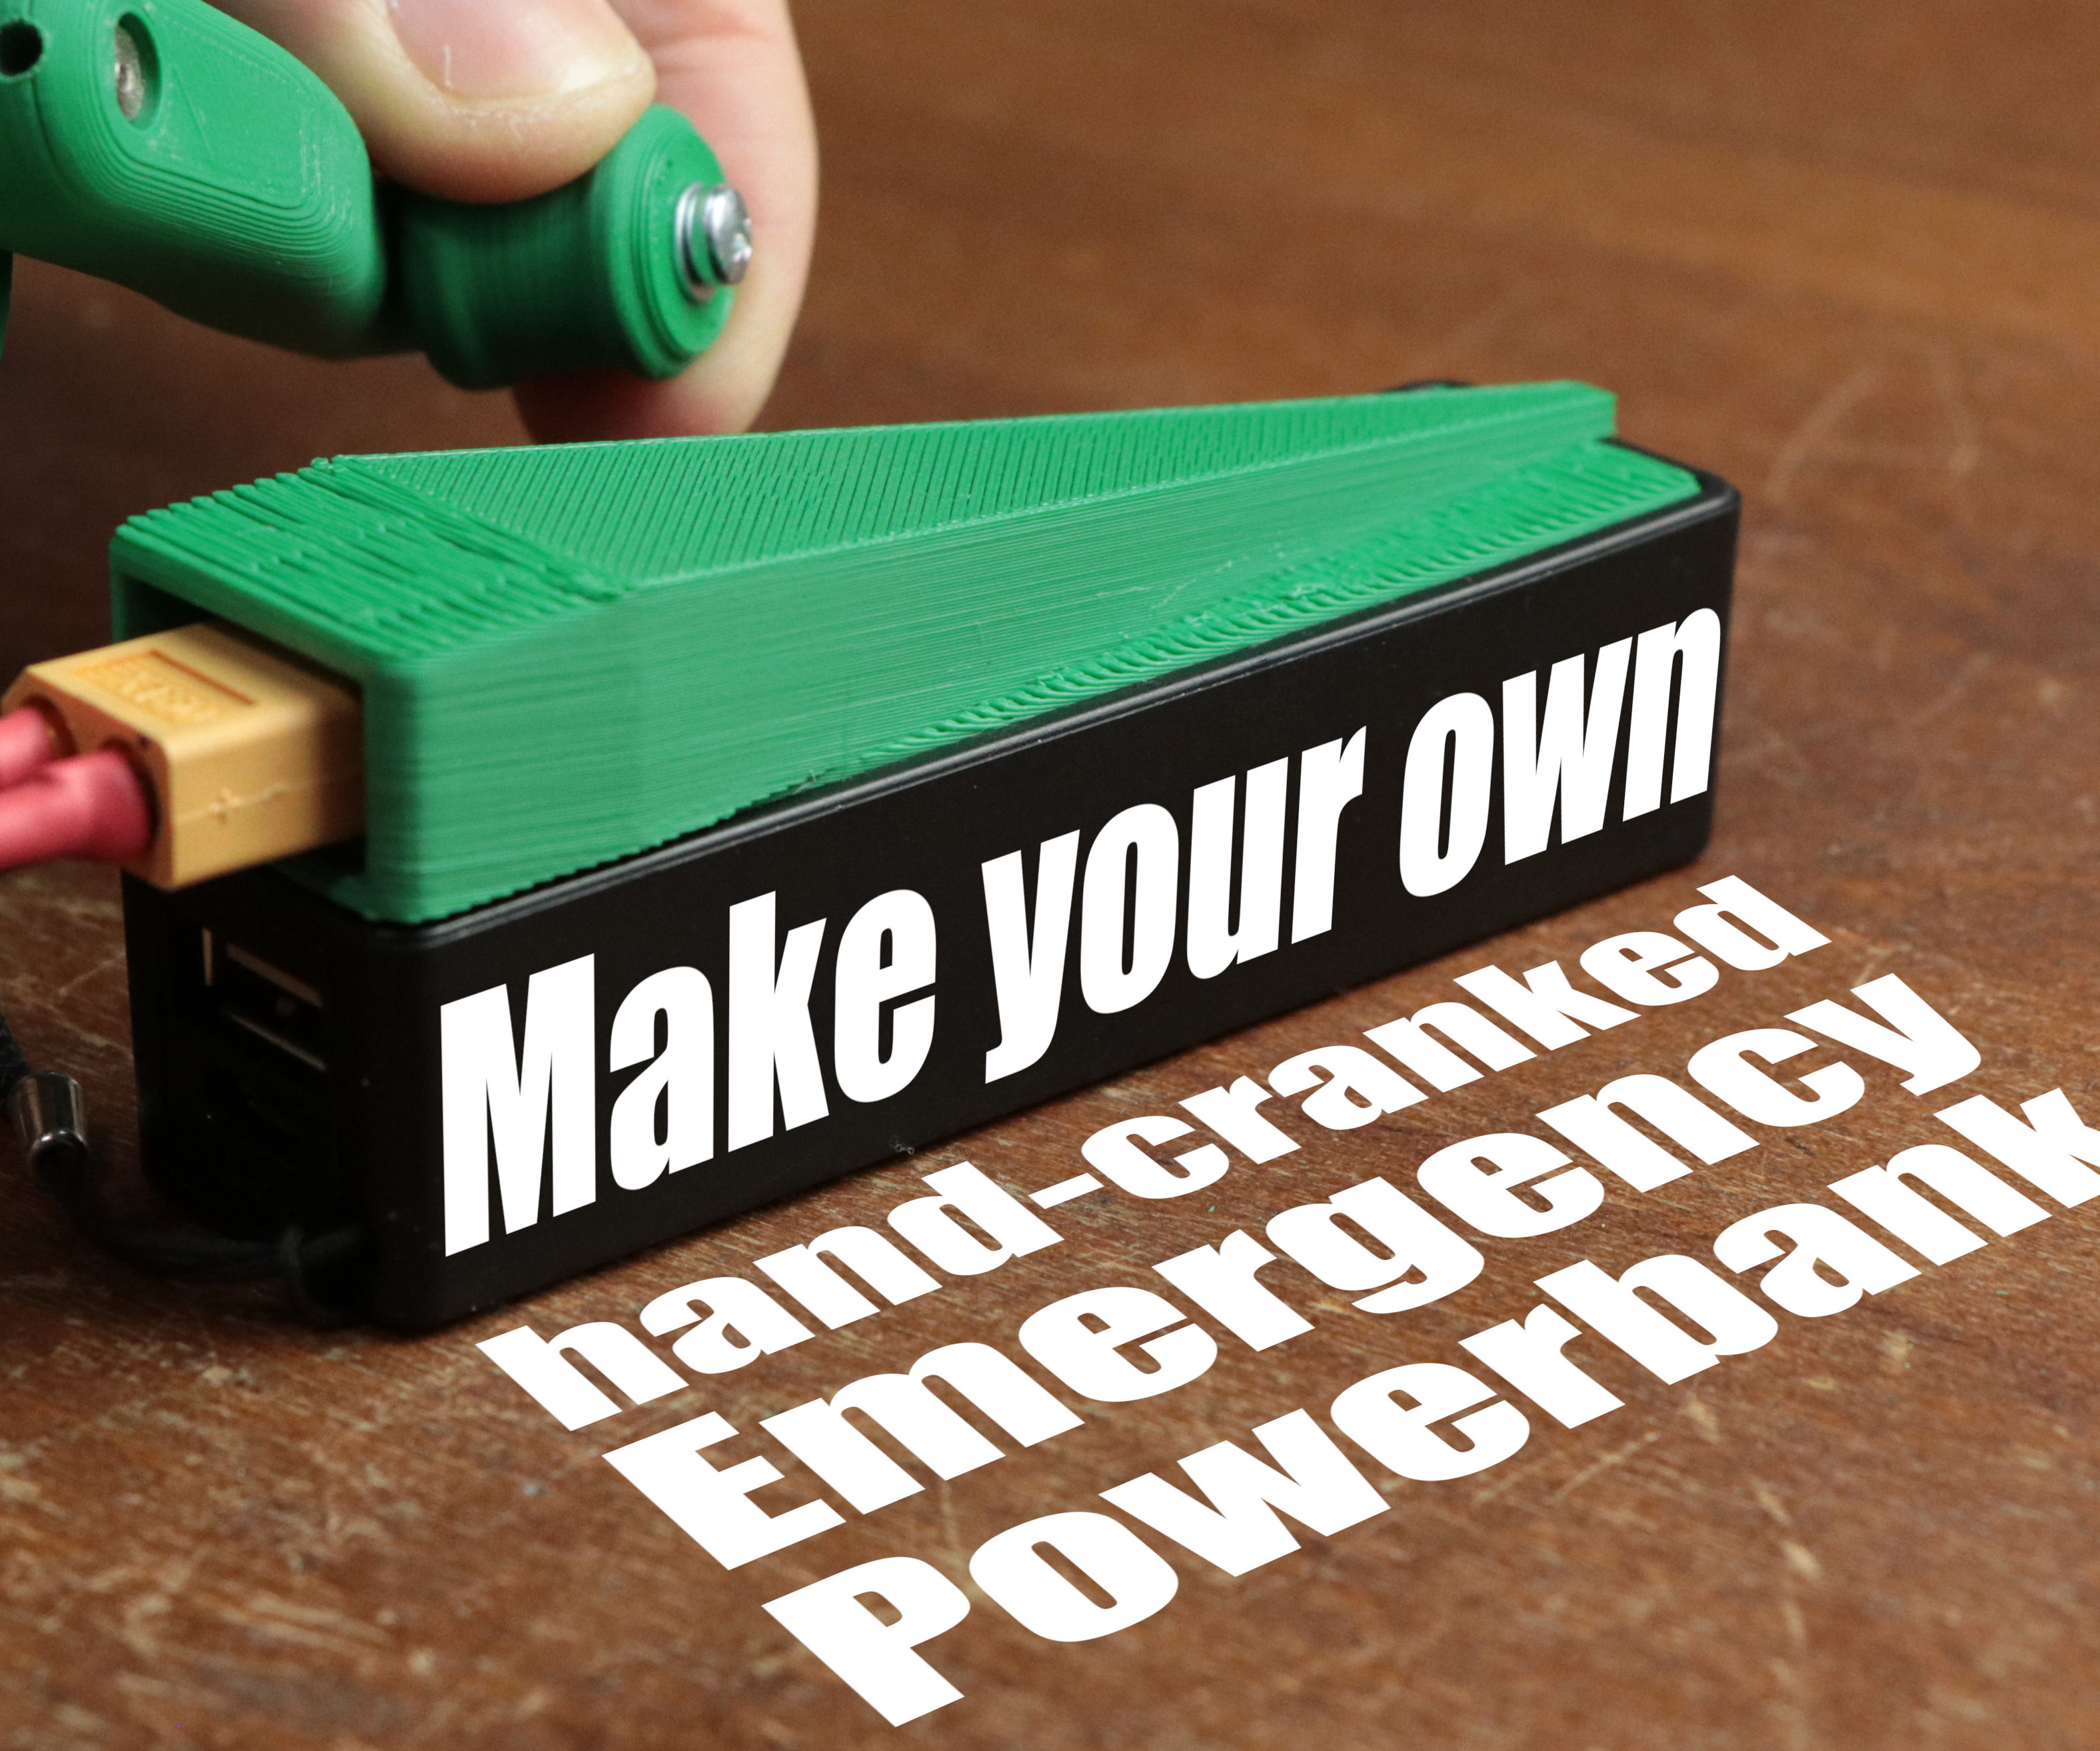 Make Your Own Hand-cranked Emergency Powerbank